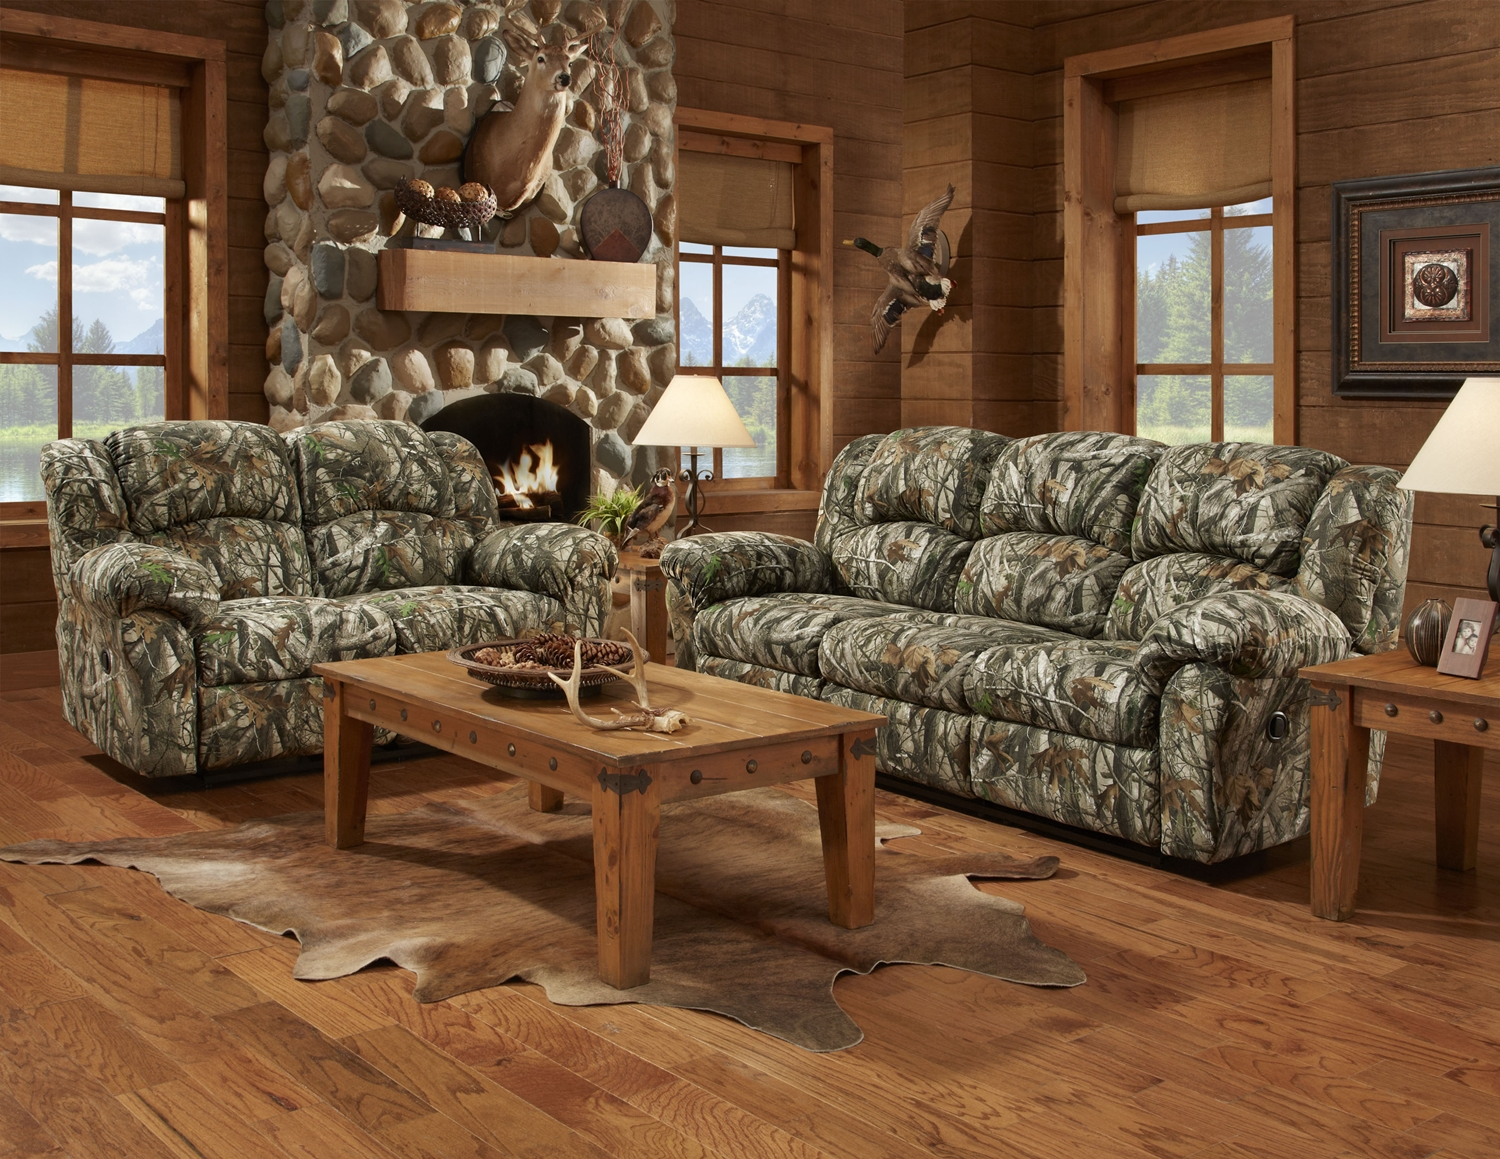 Mossy oak 3pc camouflage reclining sofa set w recliner hunting lodge furniture